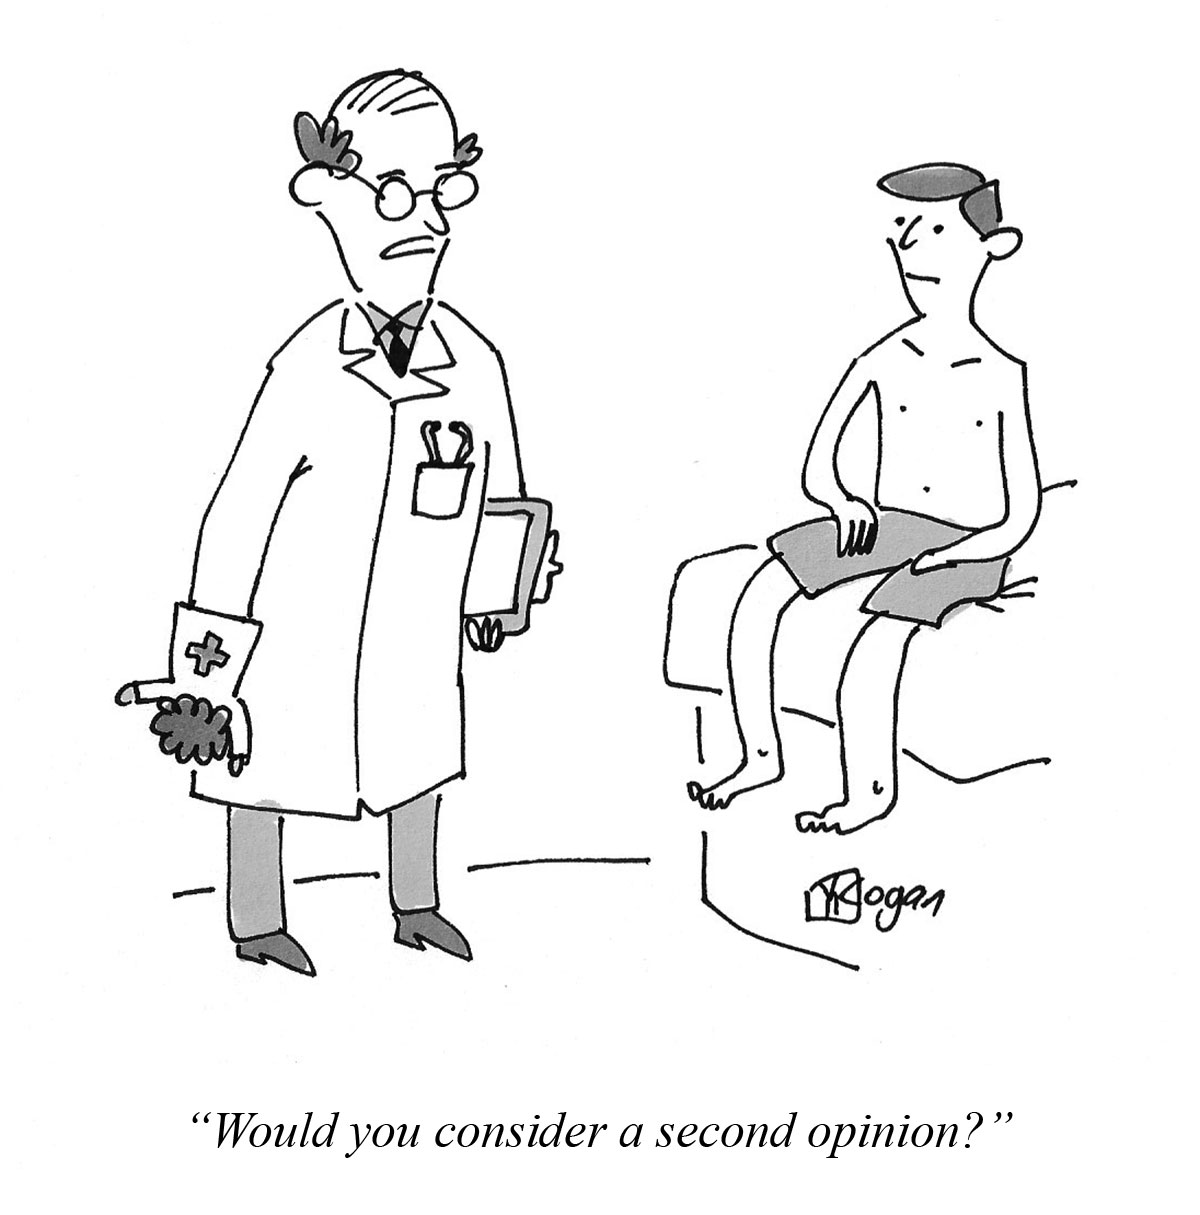 Cartoon about getting a second opinion.